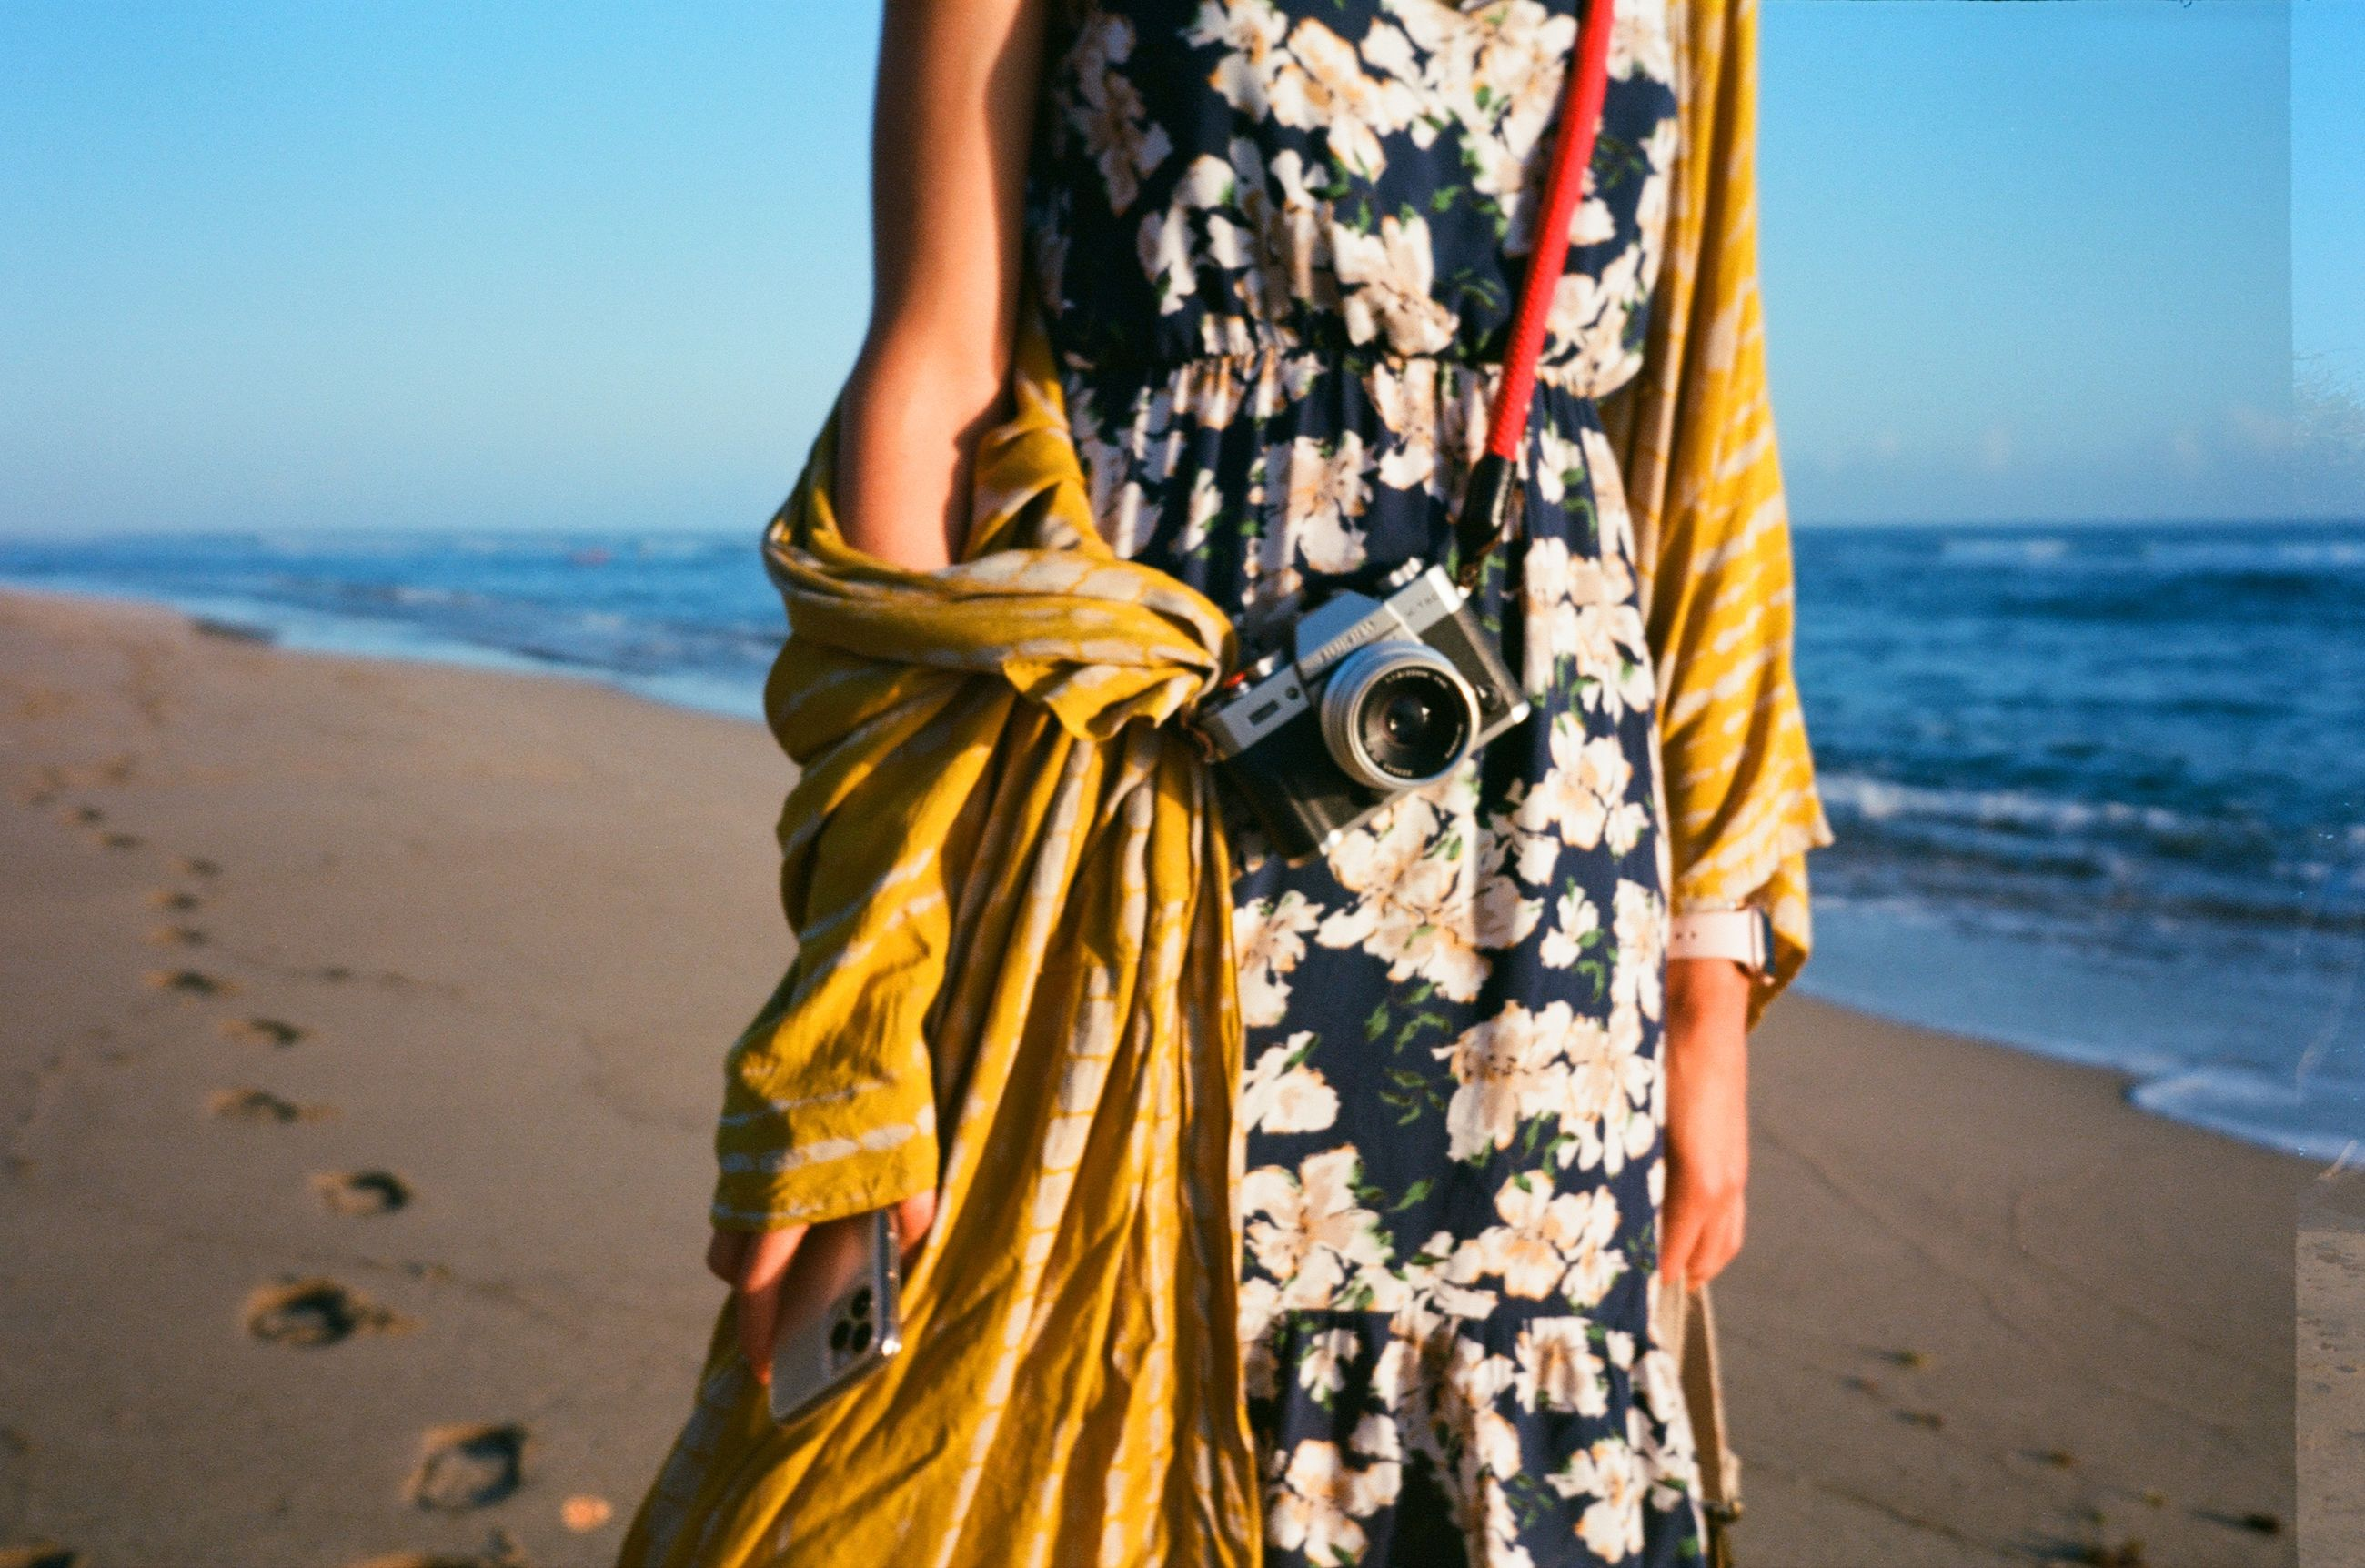 sea, yellow, beach, land, dress, water, sky, one person, adult, horizon, spring, horizon over water, nature, fashion, women, midsection, standing, clothing, day, photo shoot, sand, vacation, trip, leisure activity, outdoors, focus on foreground, day dress, beauty in nature, sunlight, holiday, young adult, tranquility, travel destinations, female, travel, lifestyles, rear view, summer, scenics - nature, pattern, person, sunny